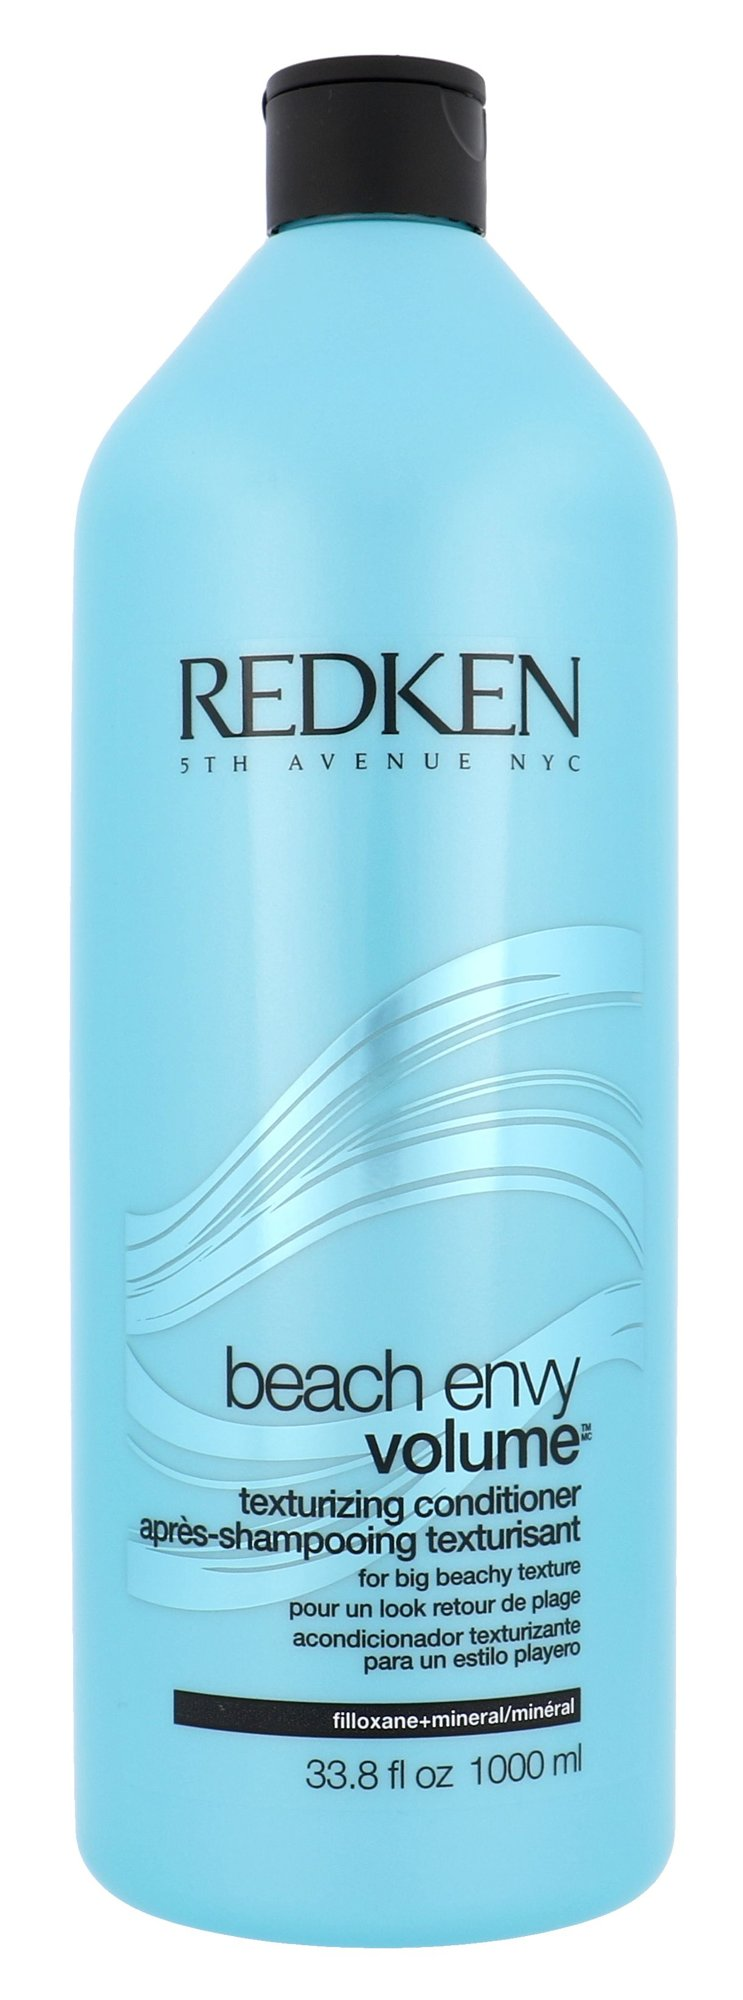 Redken Beach Envy Volume Texturizing Conditioner Cosmetic 1000ml